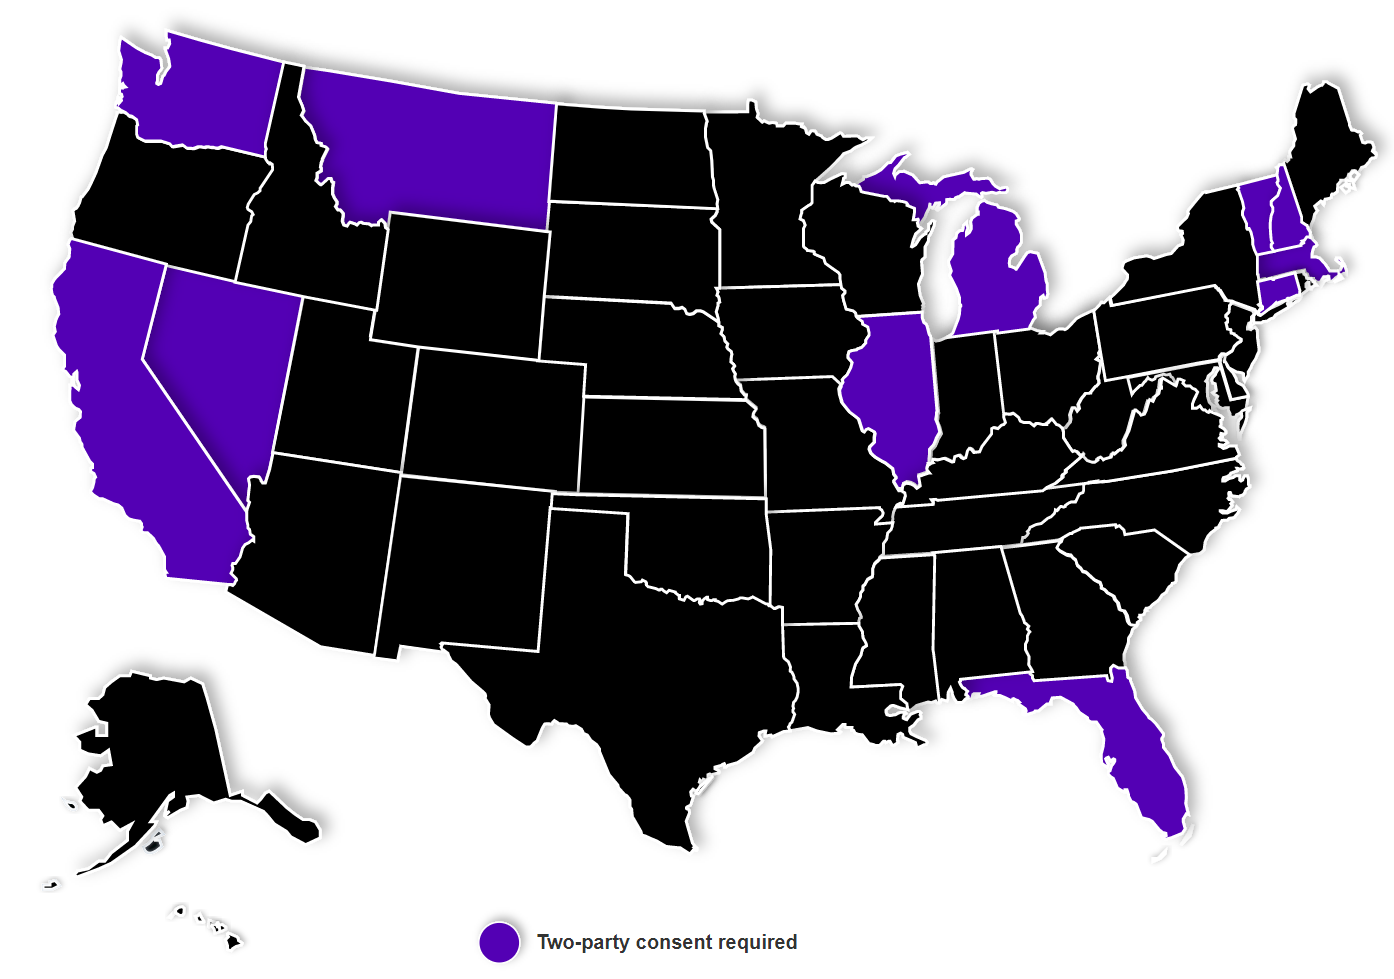 Map of the two-party consent states in the US.